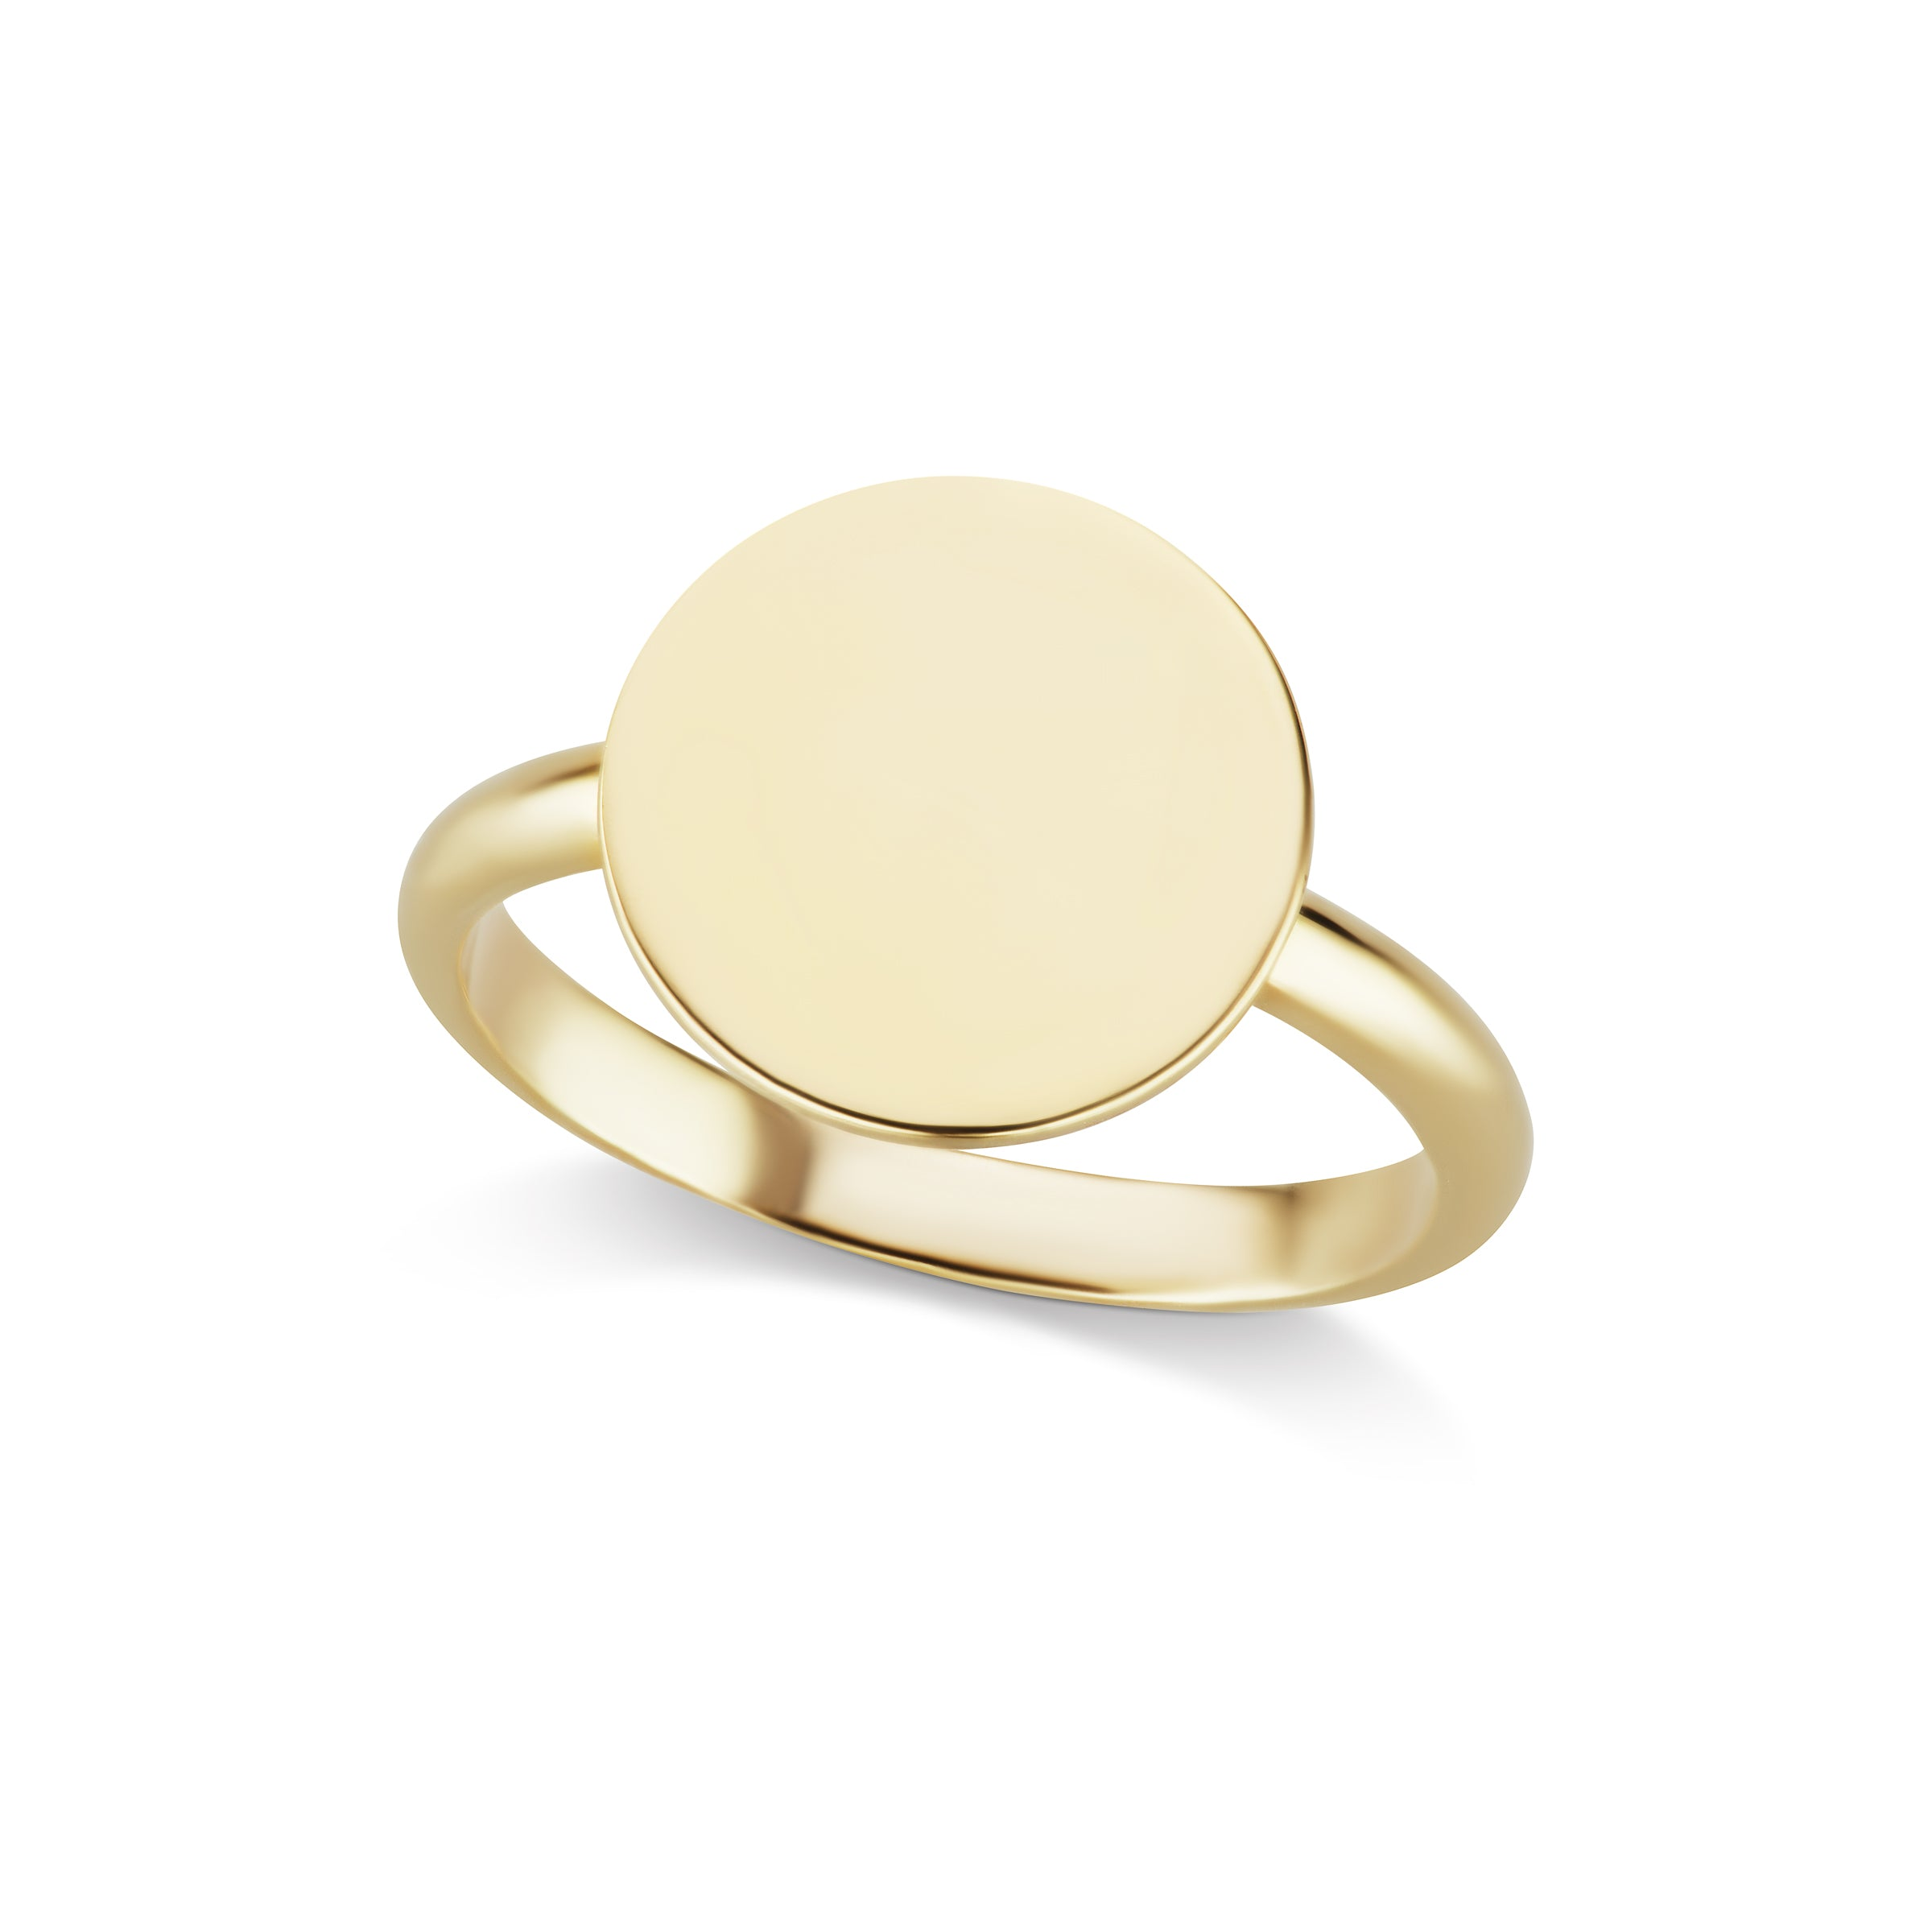 The Gold Signature Ring